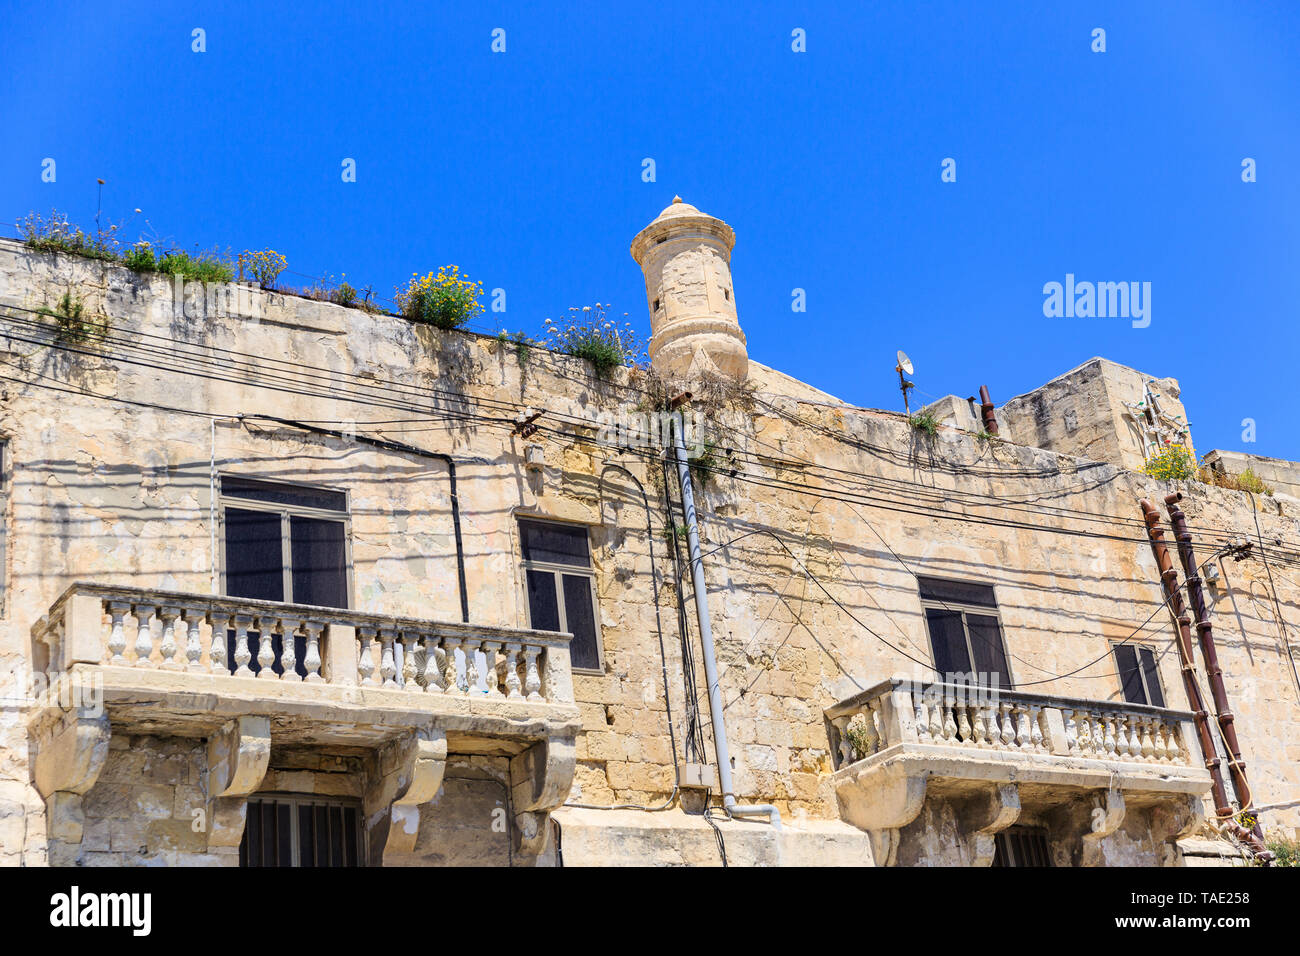 Beautiful typical maltese balcony in sandstone building overgrown with grass - Stock Image